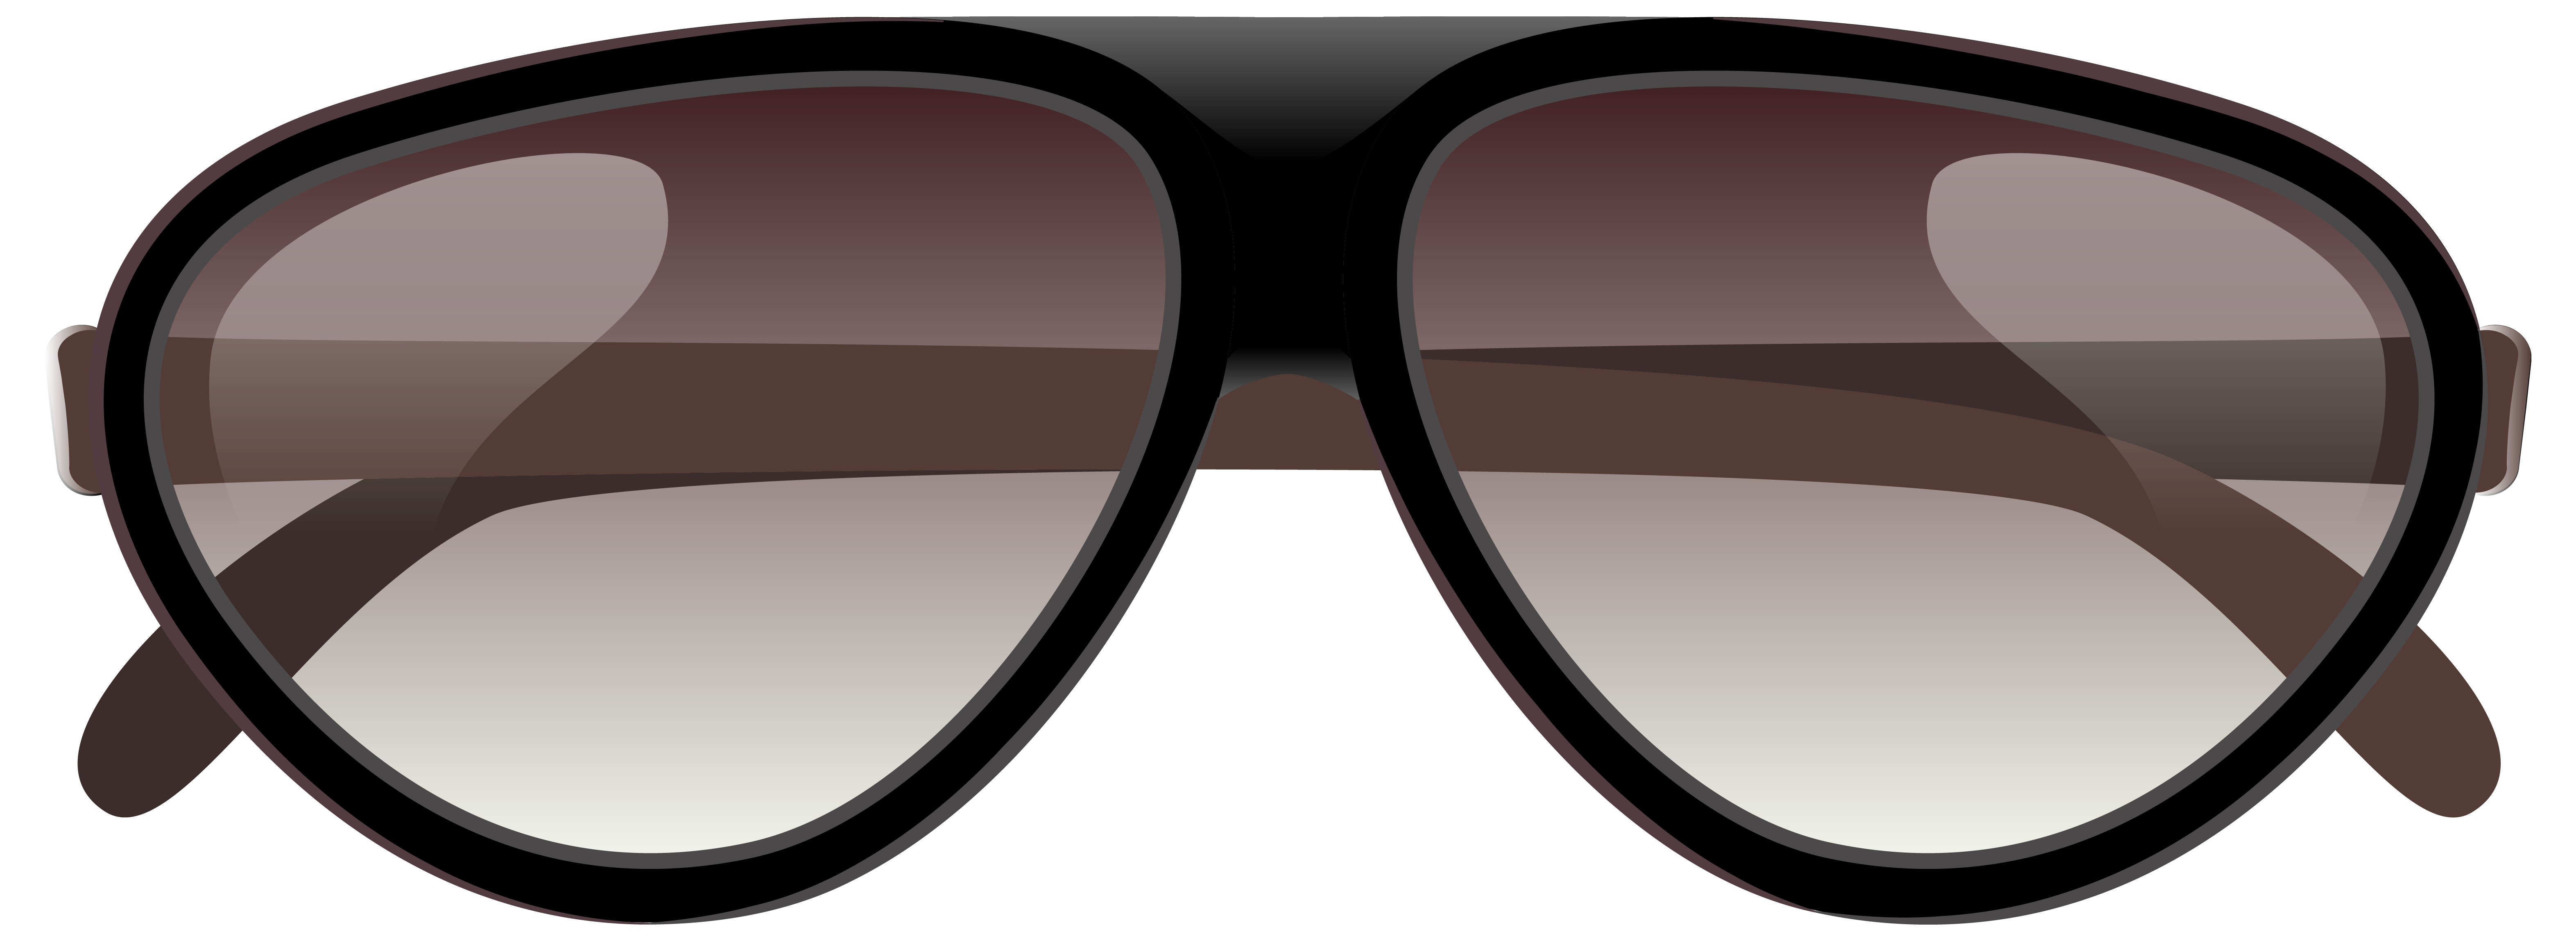 Glasses clipart brown. Large sunglasses png image